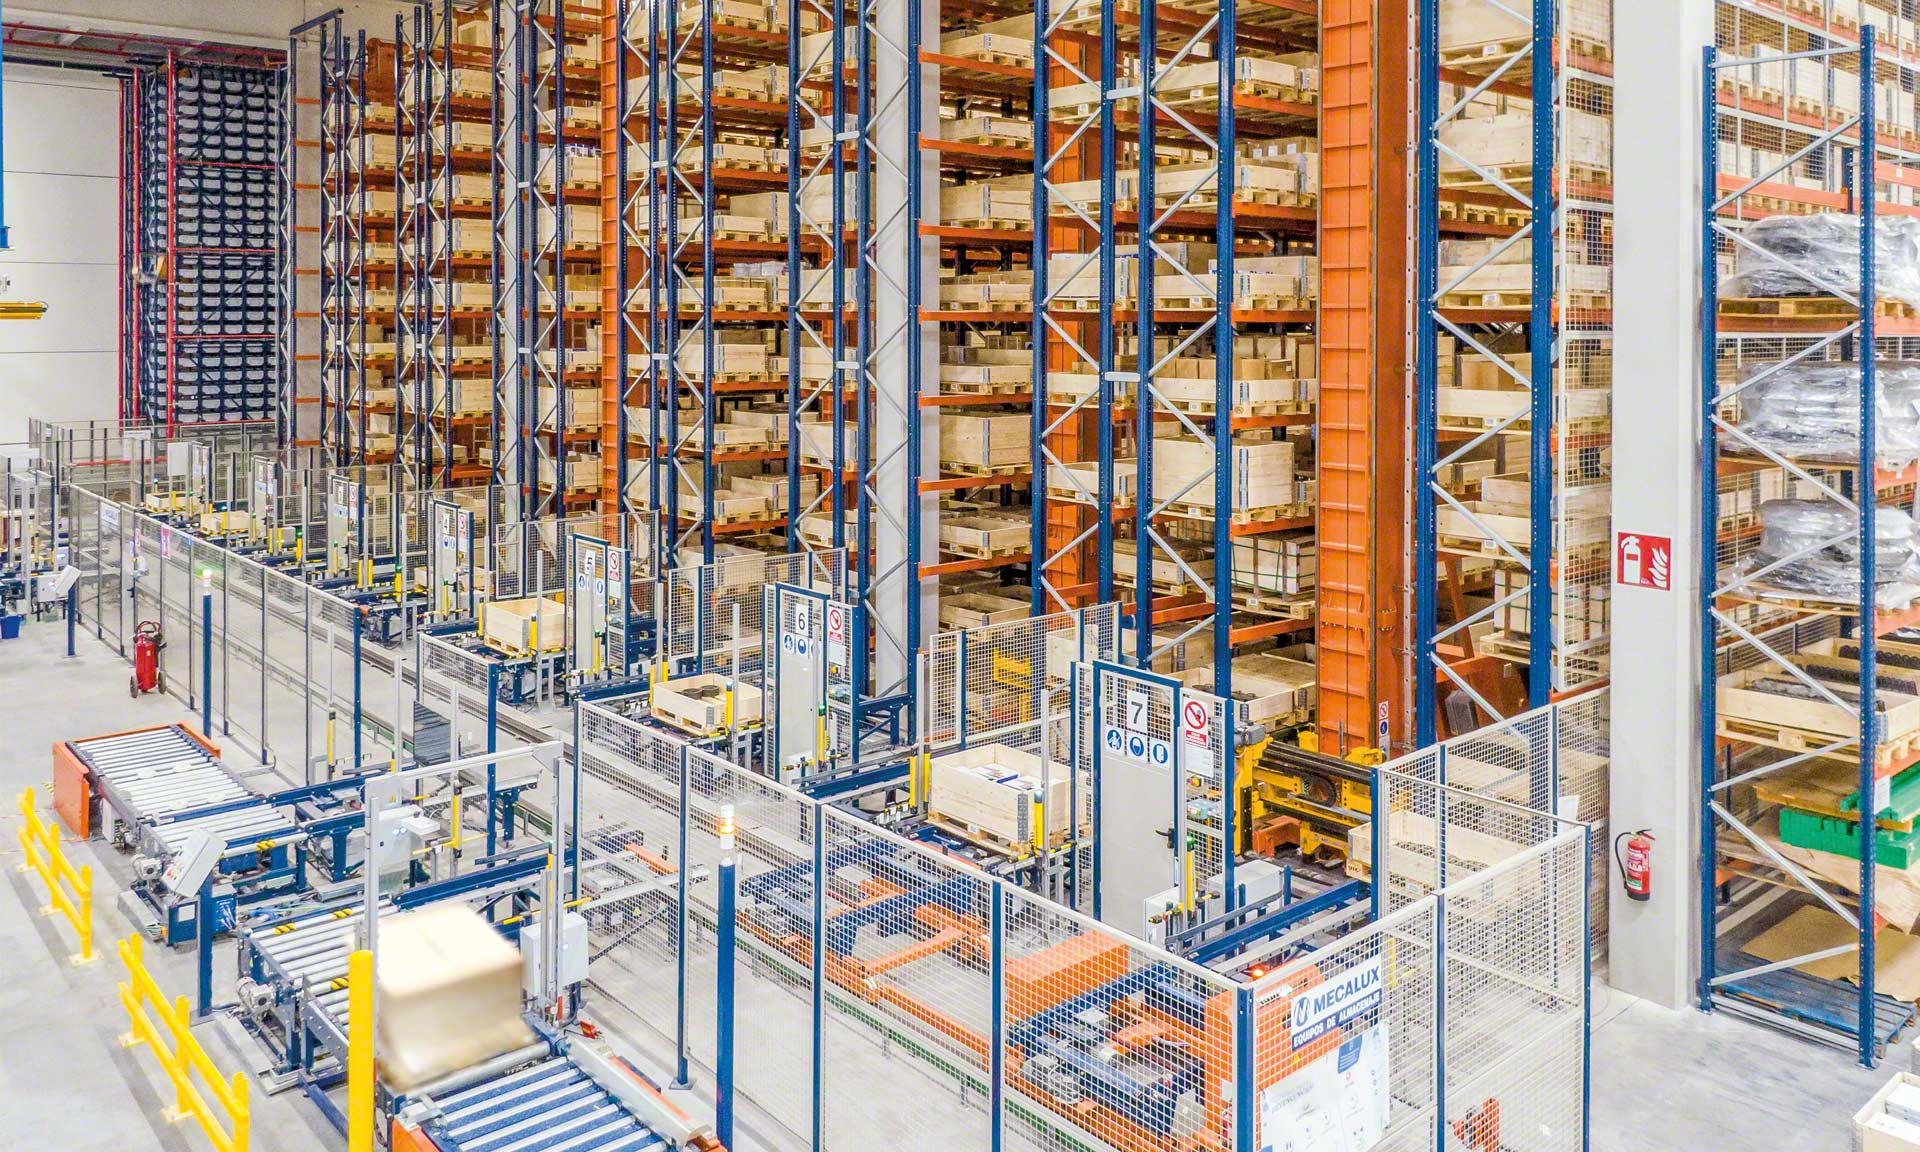 Industrias Yuk: centralized logistics, five warehouses in one with over 13,000 SKUs